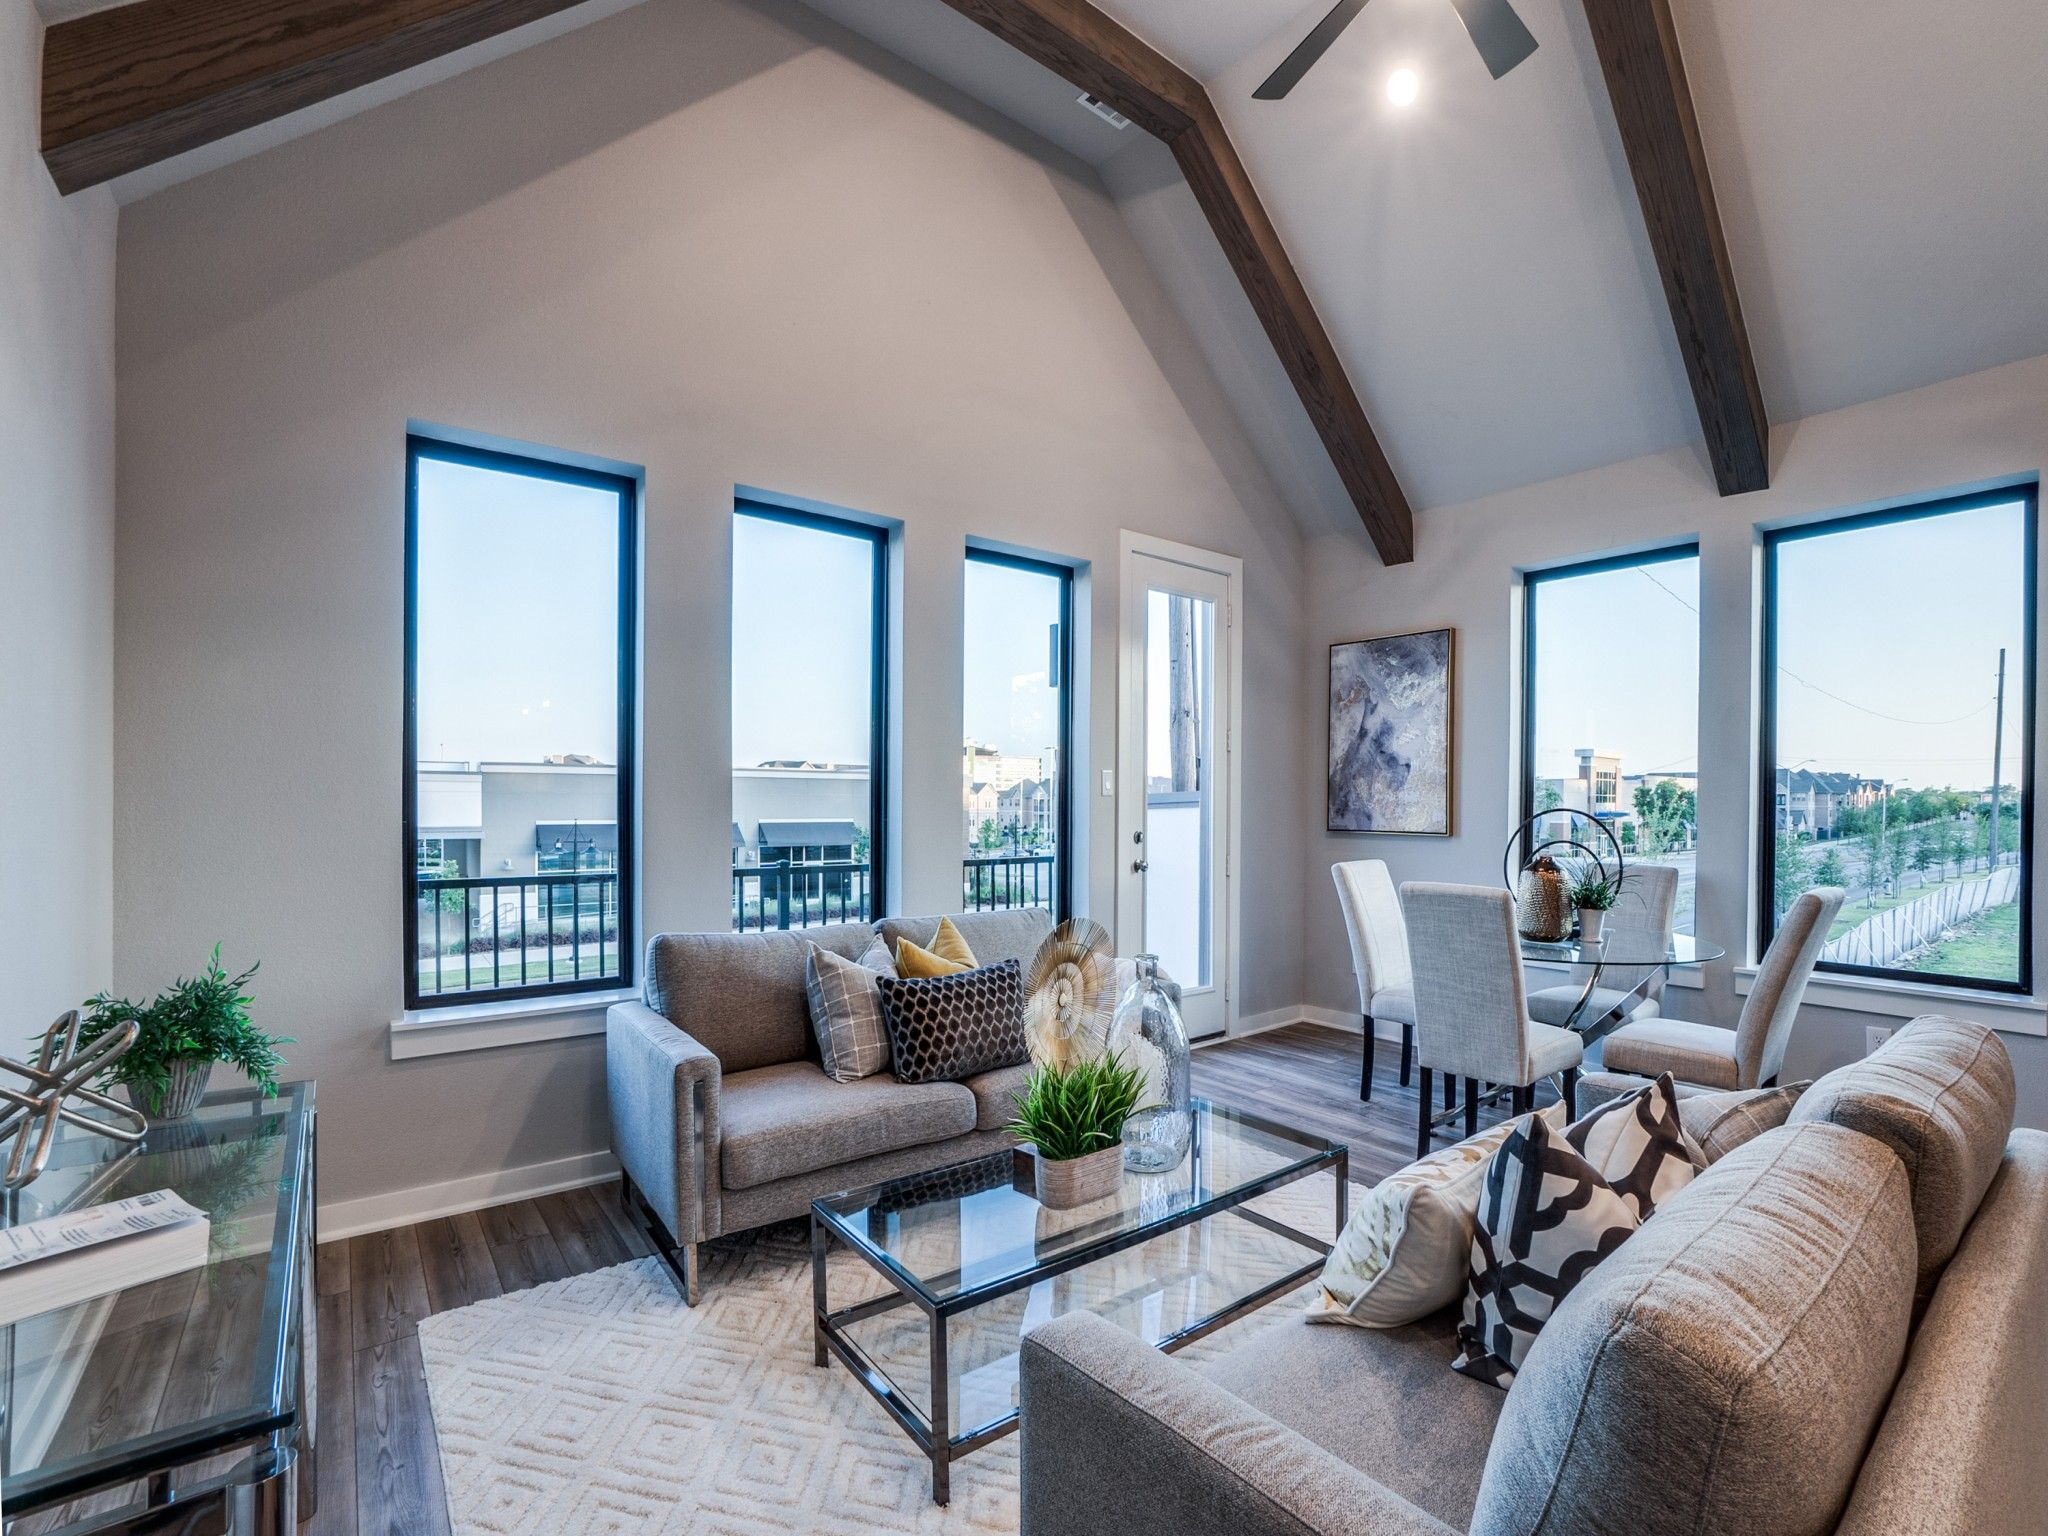 Living Area featured in the Mulholland By Centre Living Homes in Dallas, TX